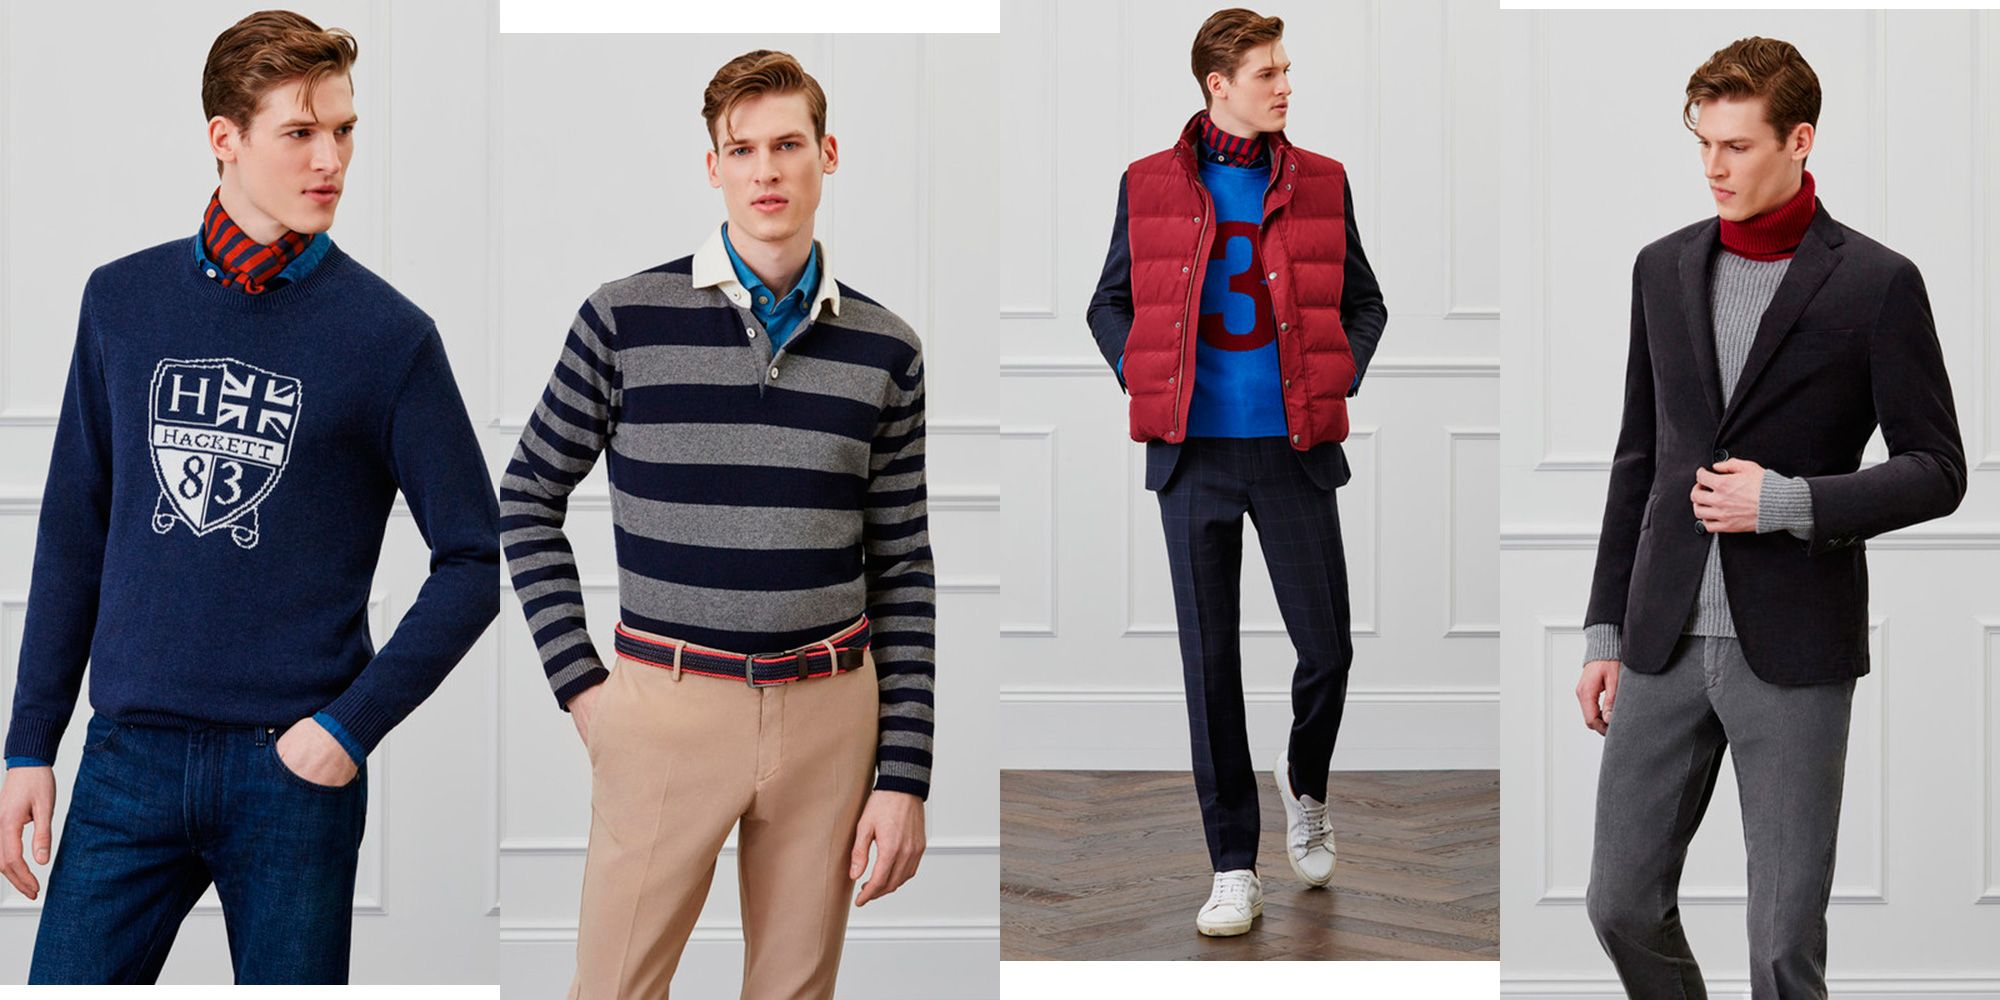 hackett london ropa hombre otoño 2018 classic reinveted